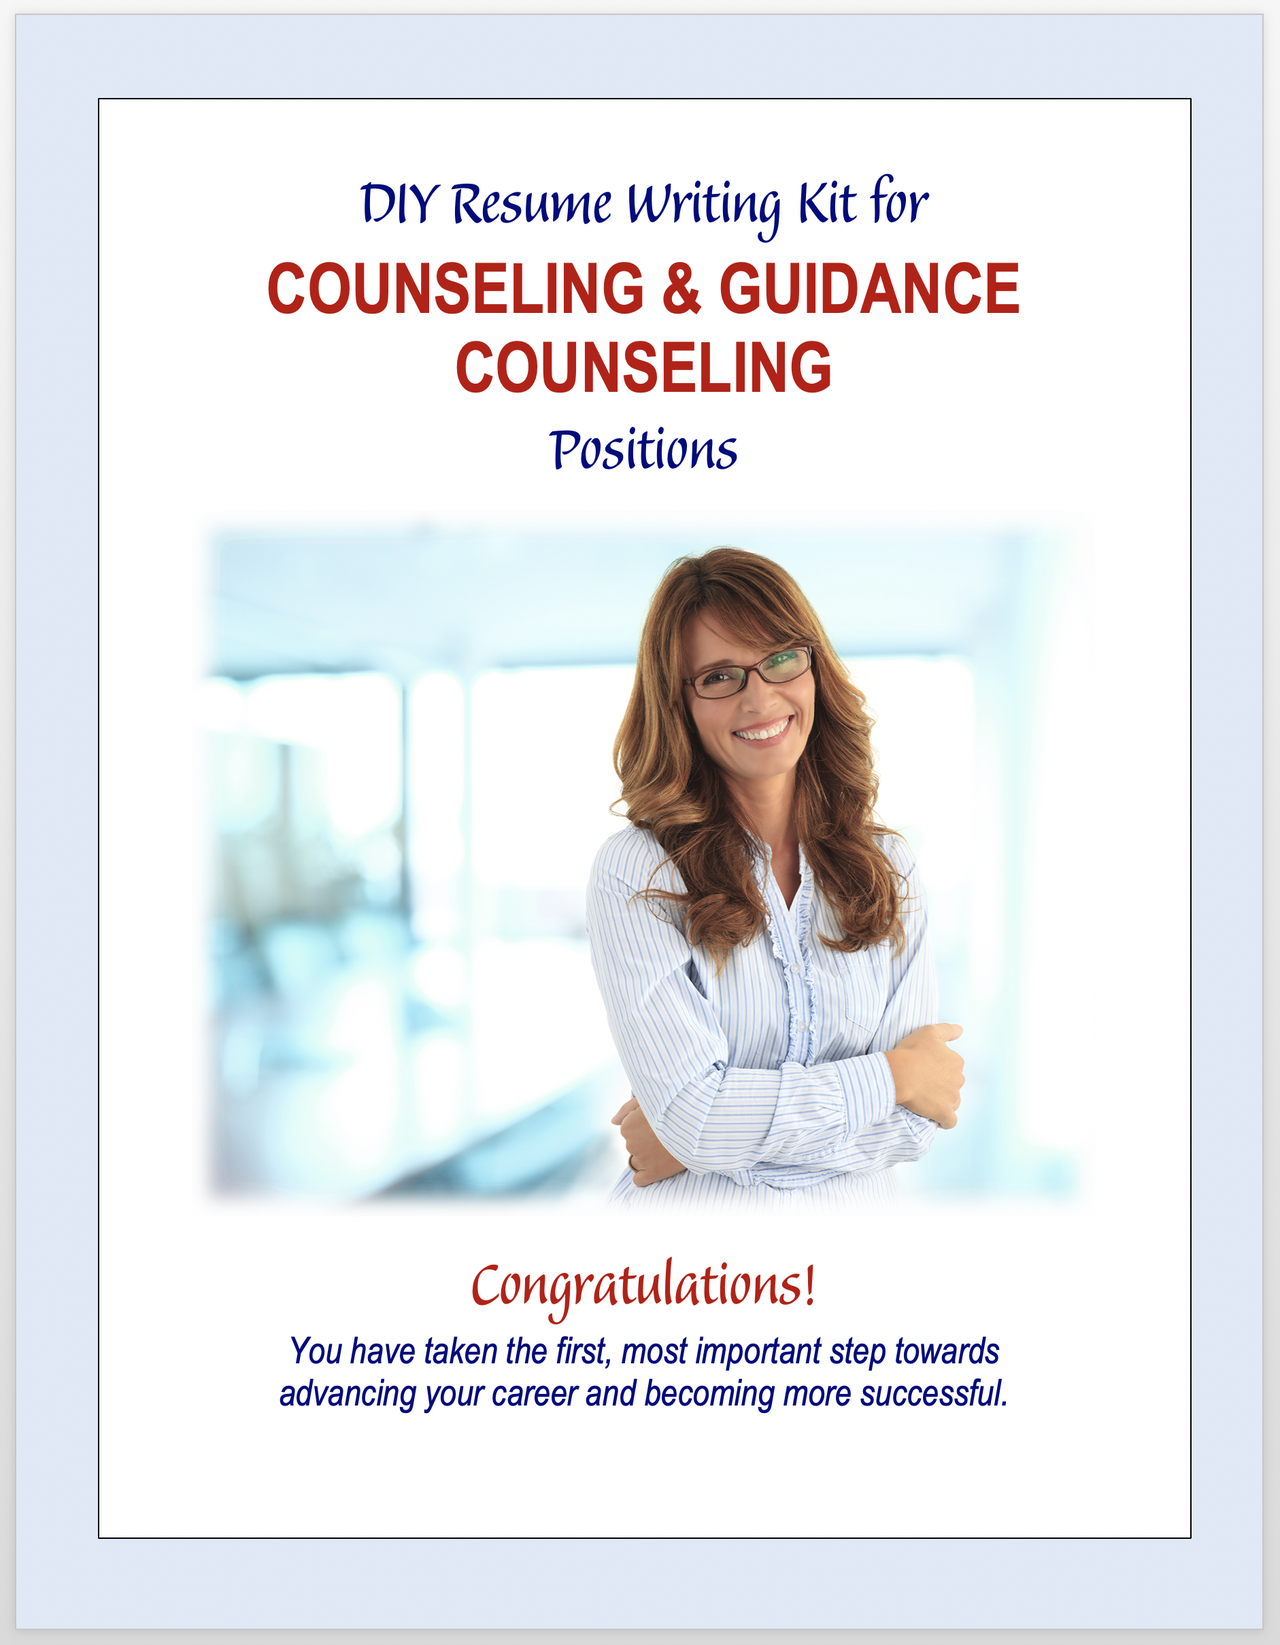 counseling & guidance counseling.png